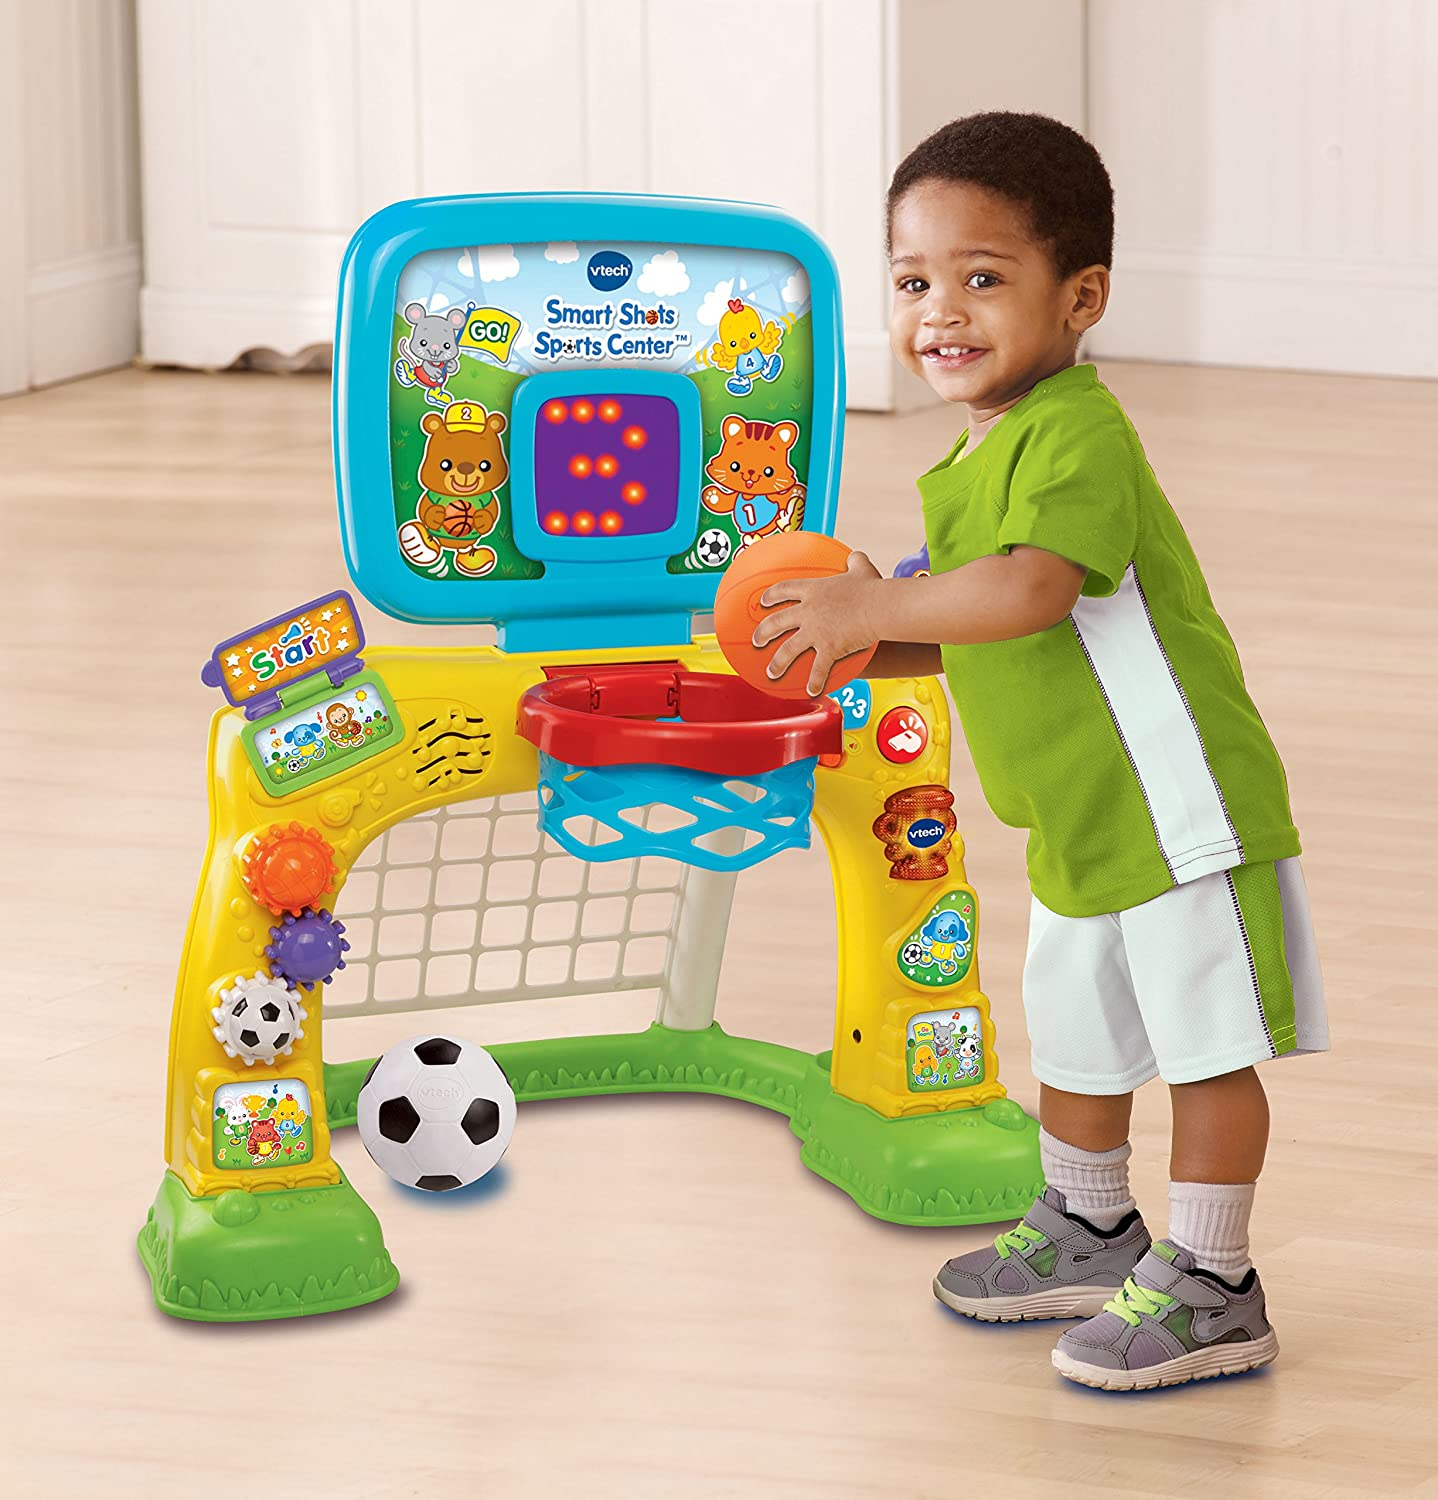 VTech Smart Shots Sports Center Amazon Toys & Games